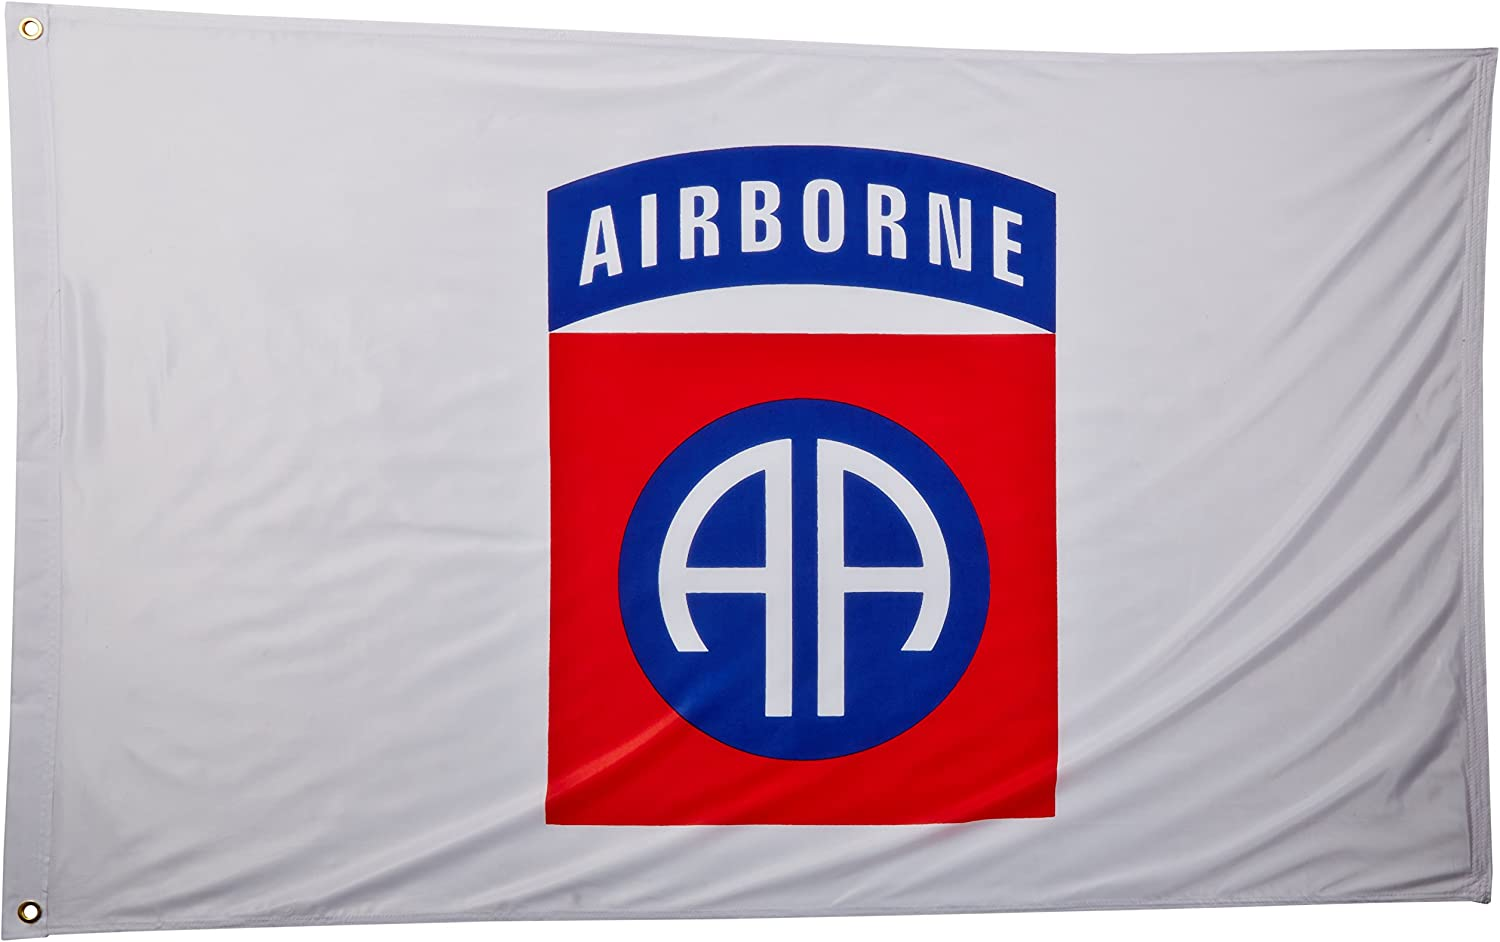 82nd Airborne Super Knit Polyester Flag - 3ft x 5ft - Officially Licensed Product of The U.S. Army